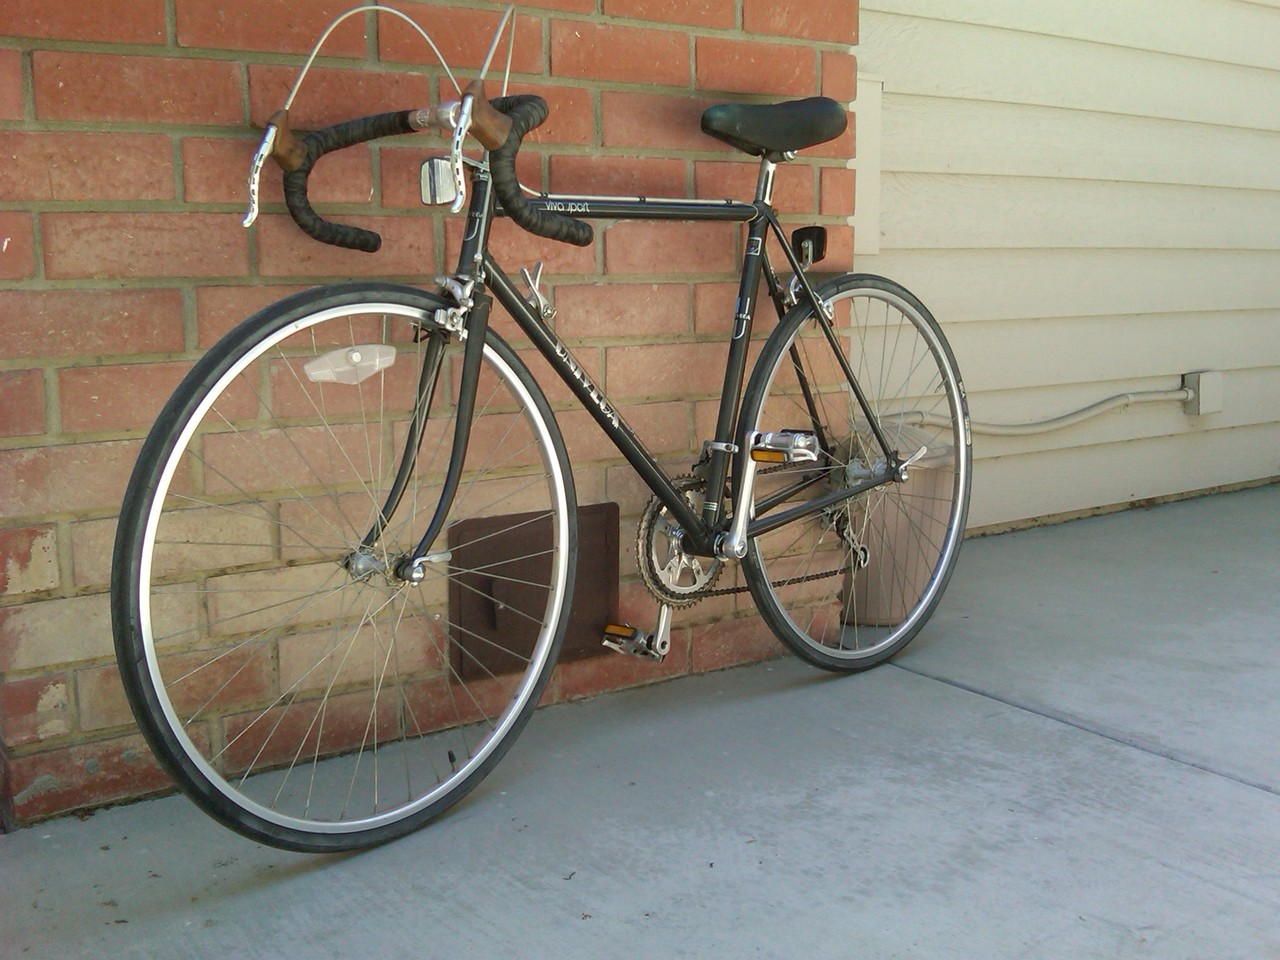 An old univega my dad had in our garage. I'm going to buy a new saddle soon because I'm afraid the one right now is a little bit too uncomfortable. Taking this to the beach tomorrow!